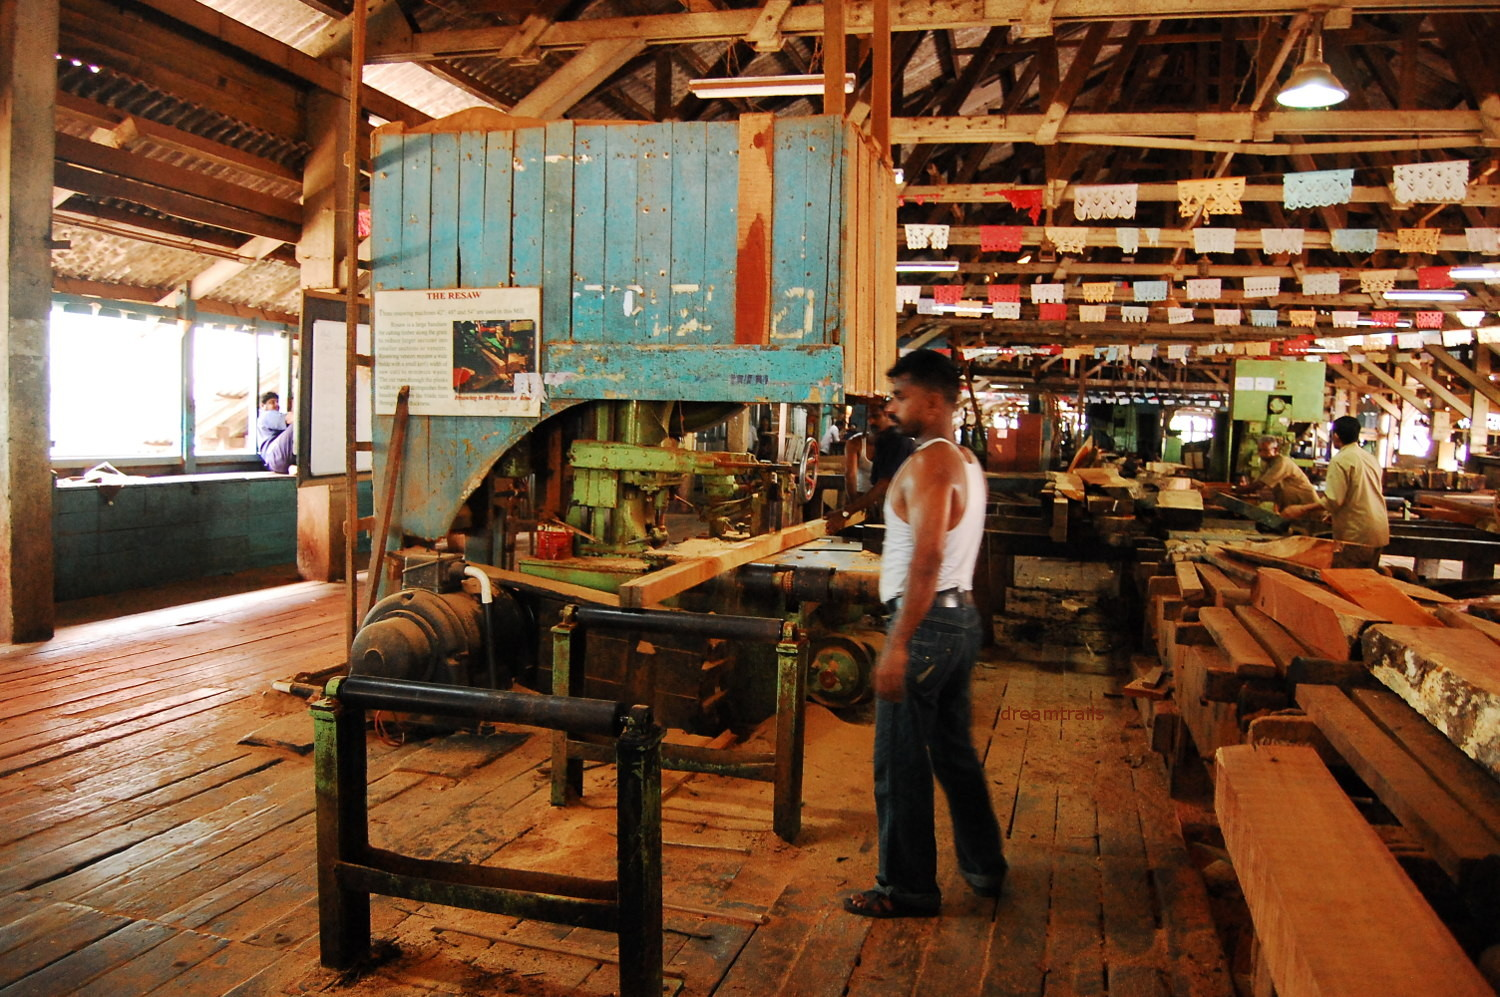 Chatham Saw Mill, Port Blair, Andaman & Nicobar Islands